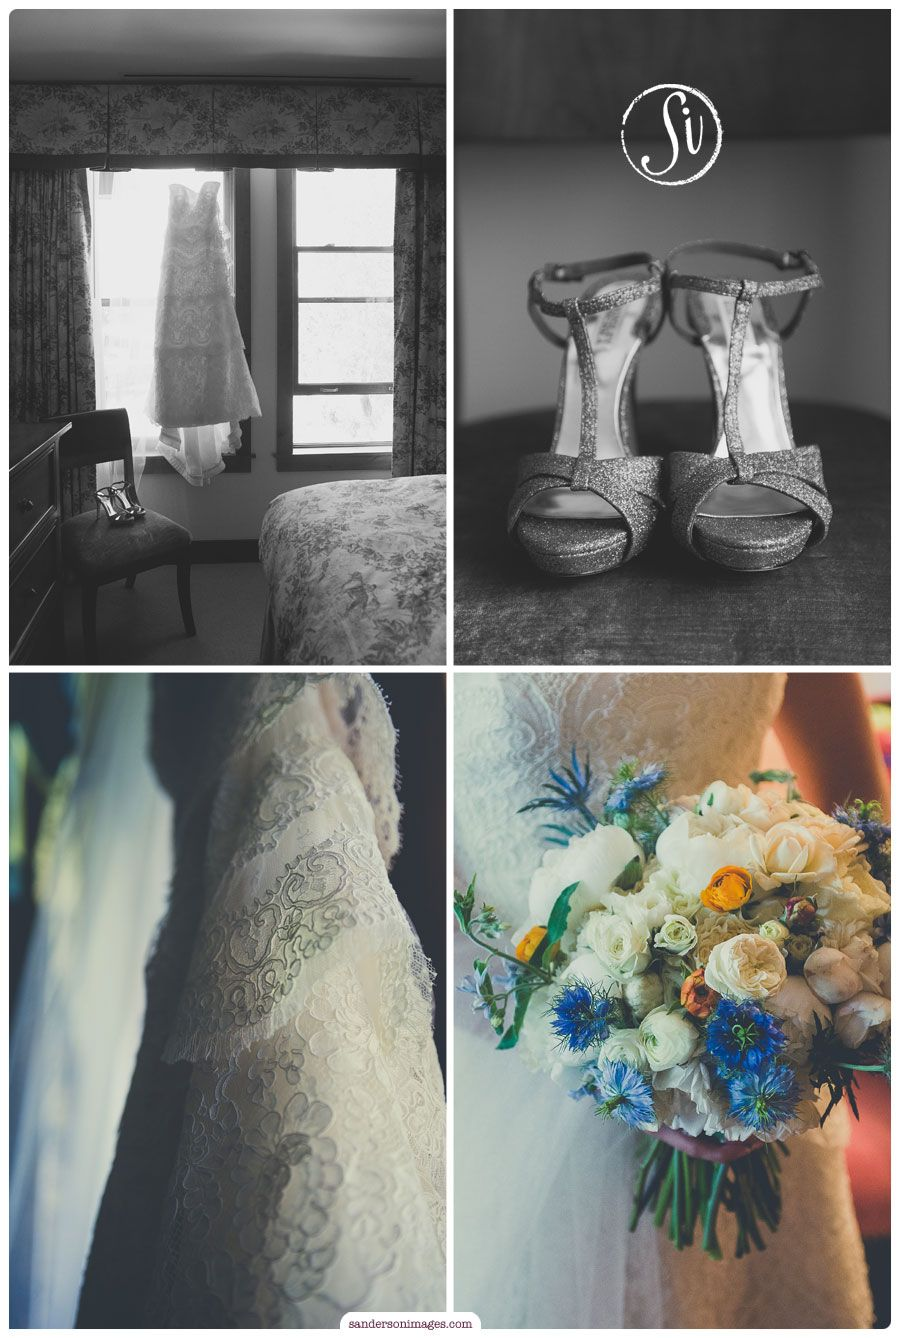 Lace wedding dress blue and white bridal bouquet and silver shoes